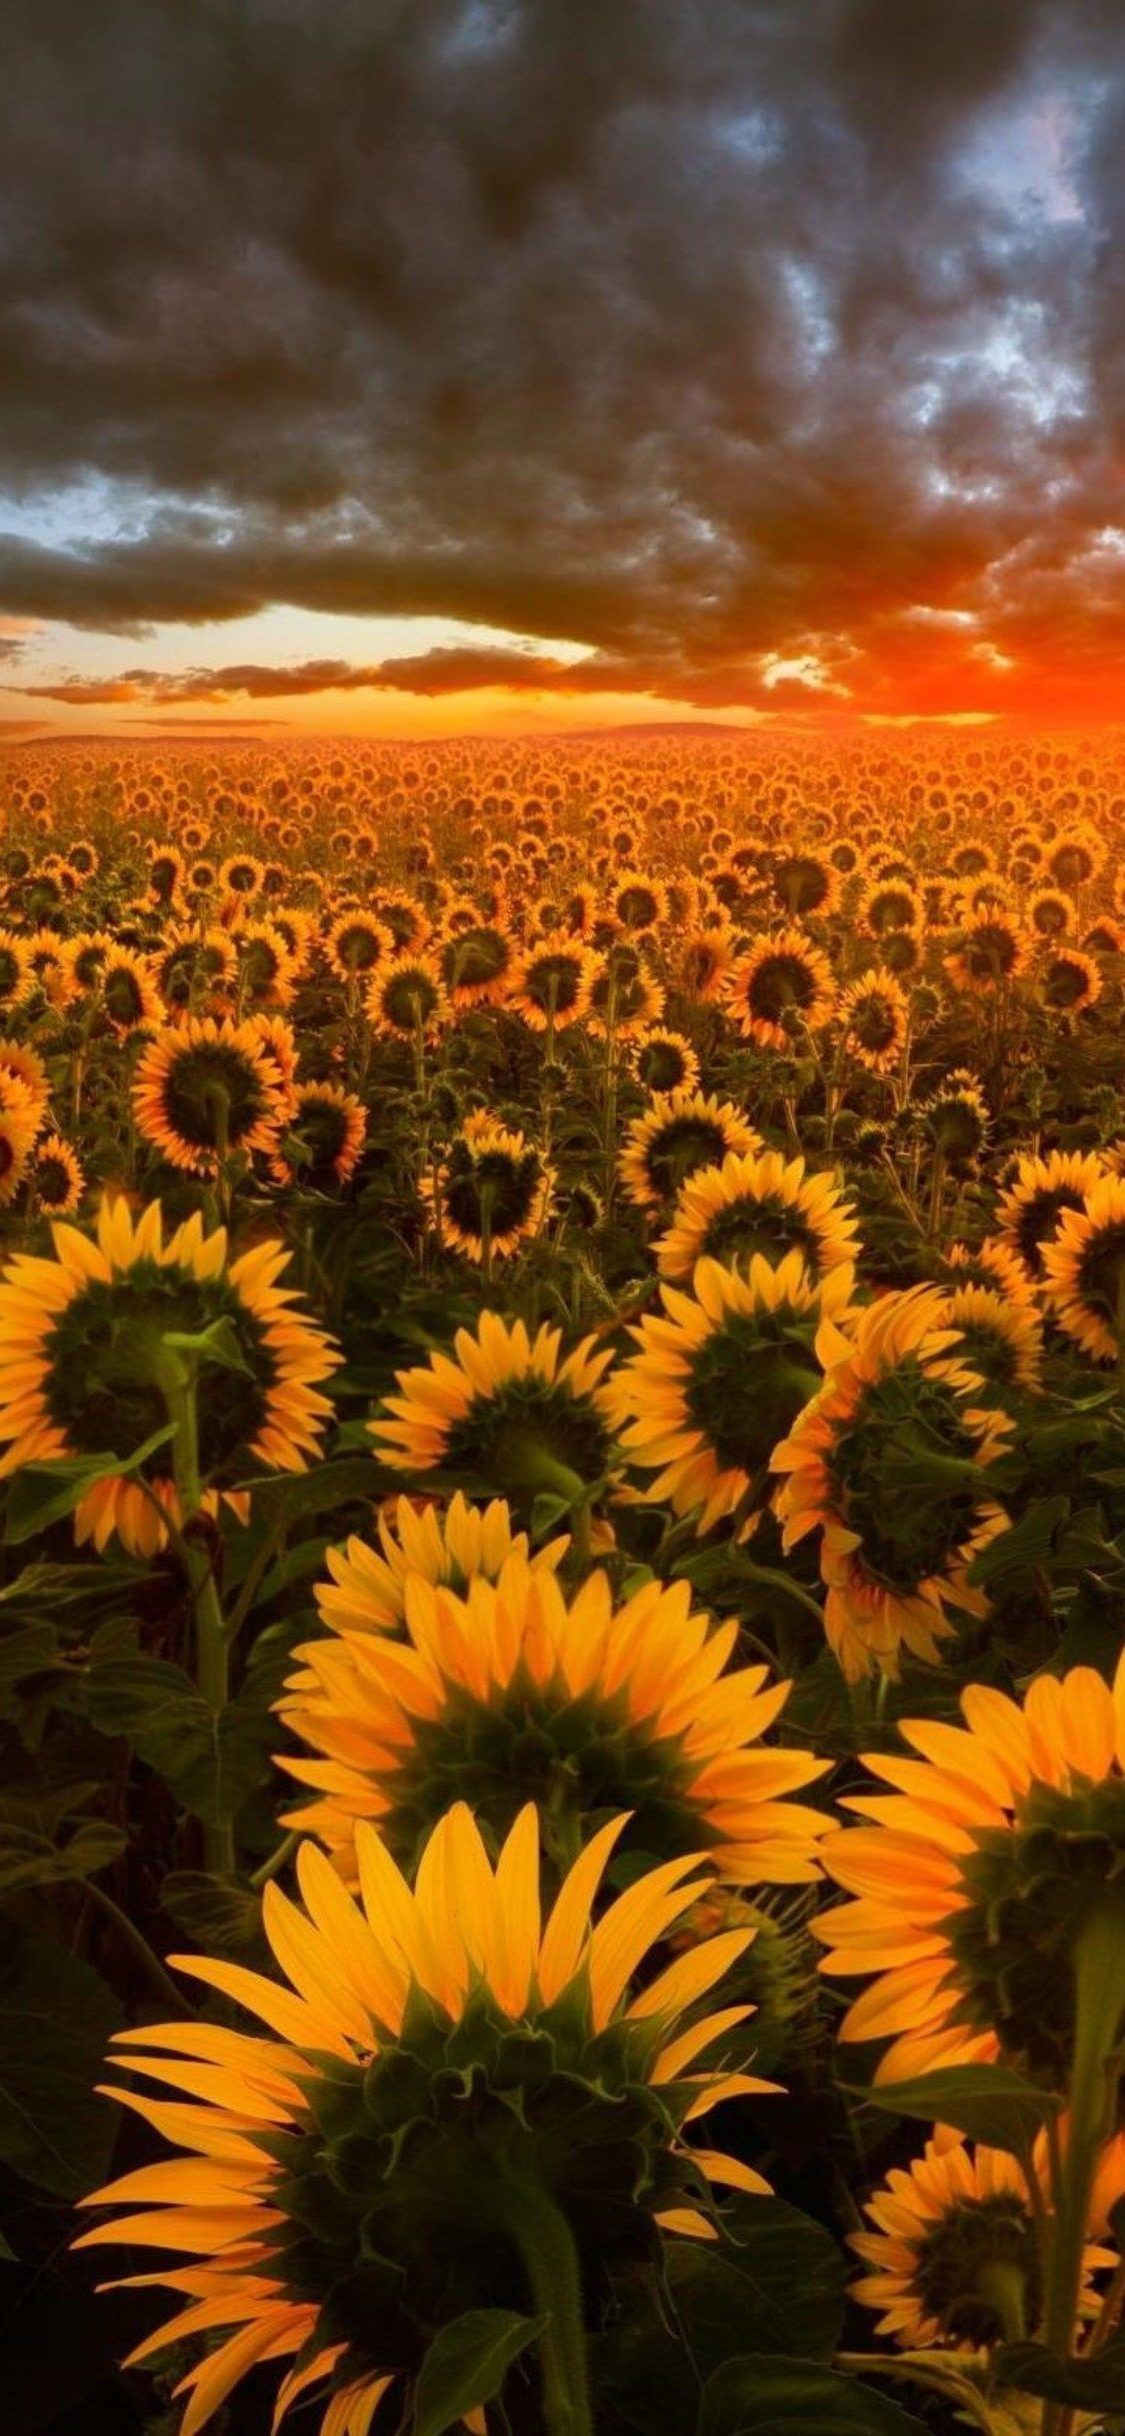 iPhone Sunflower HD Wallpapers - Wallpaper Cave